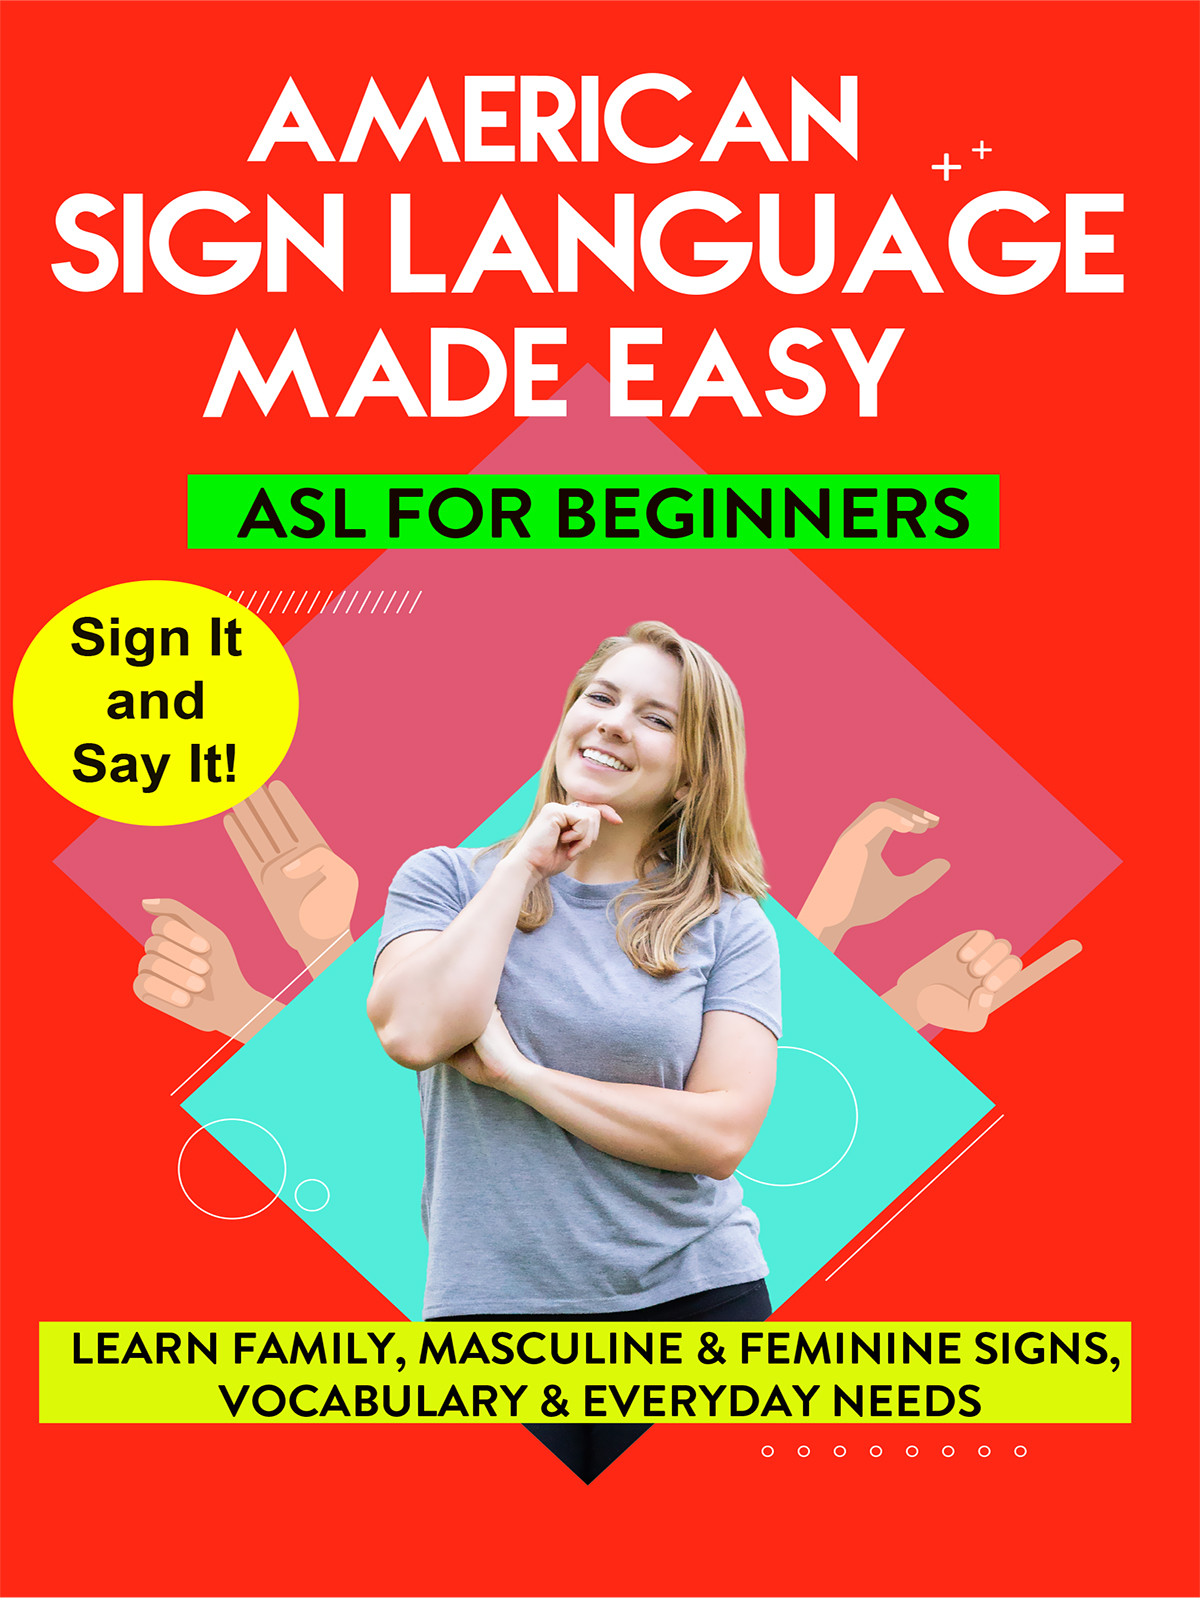 K9802 - ASL - Learn Family, Masculine & Feminine Signs, Vocabulary & Everyday Needs